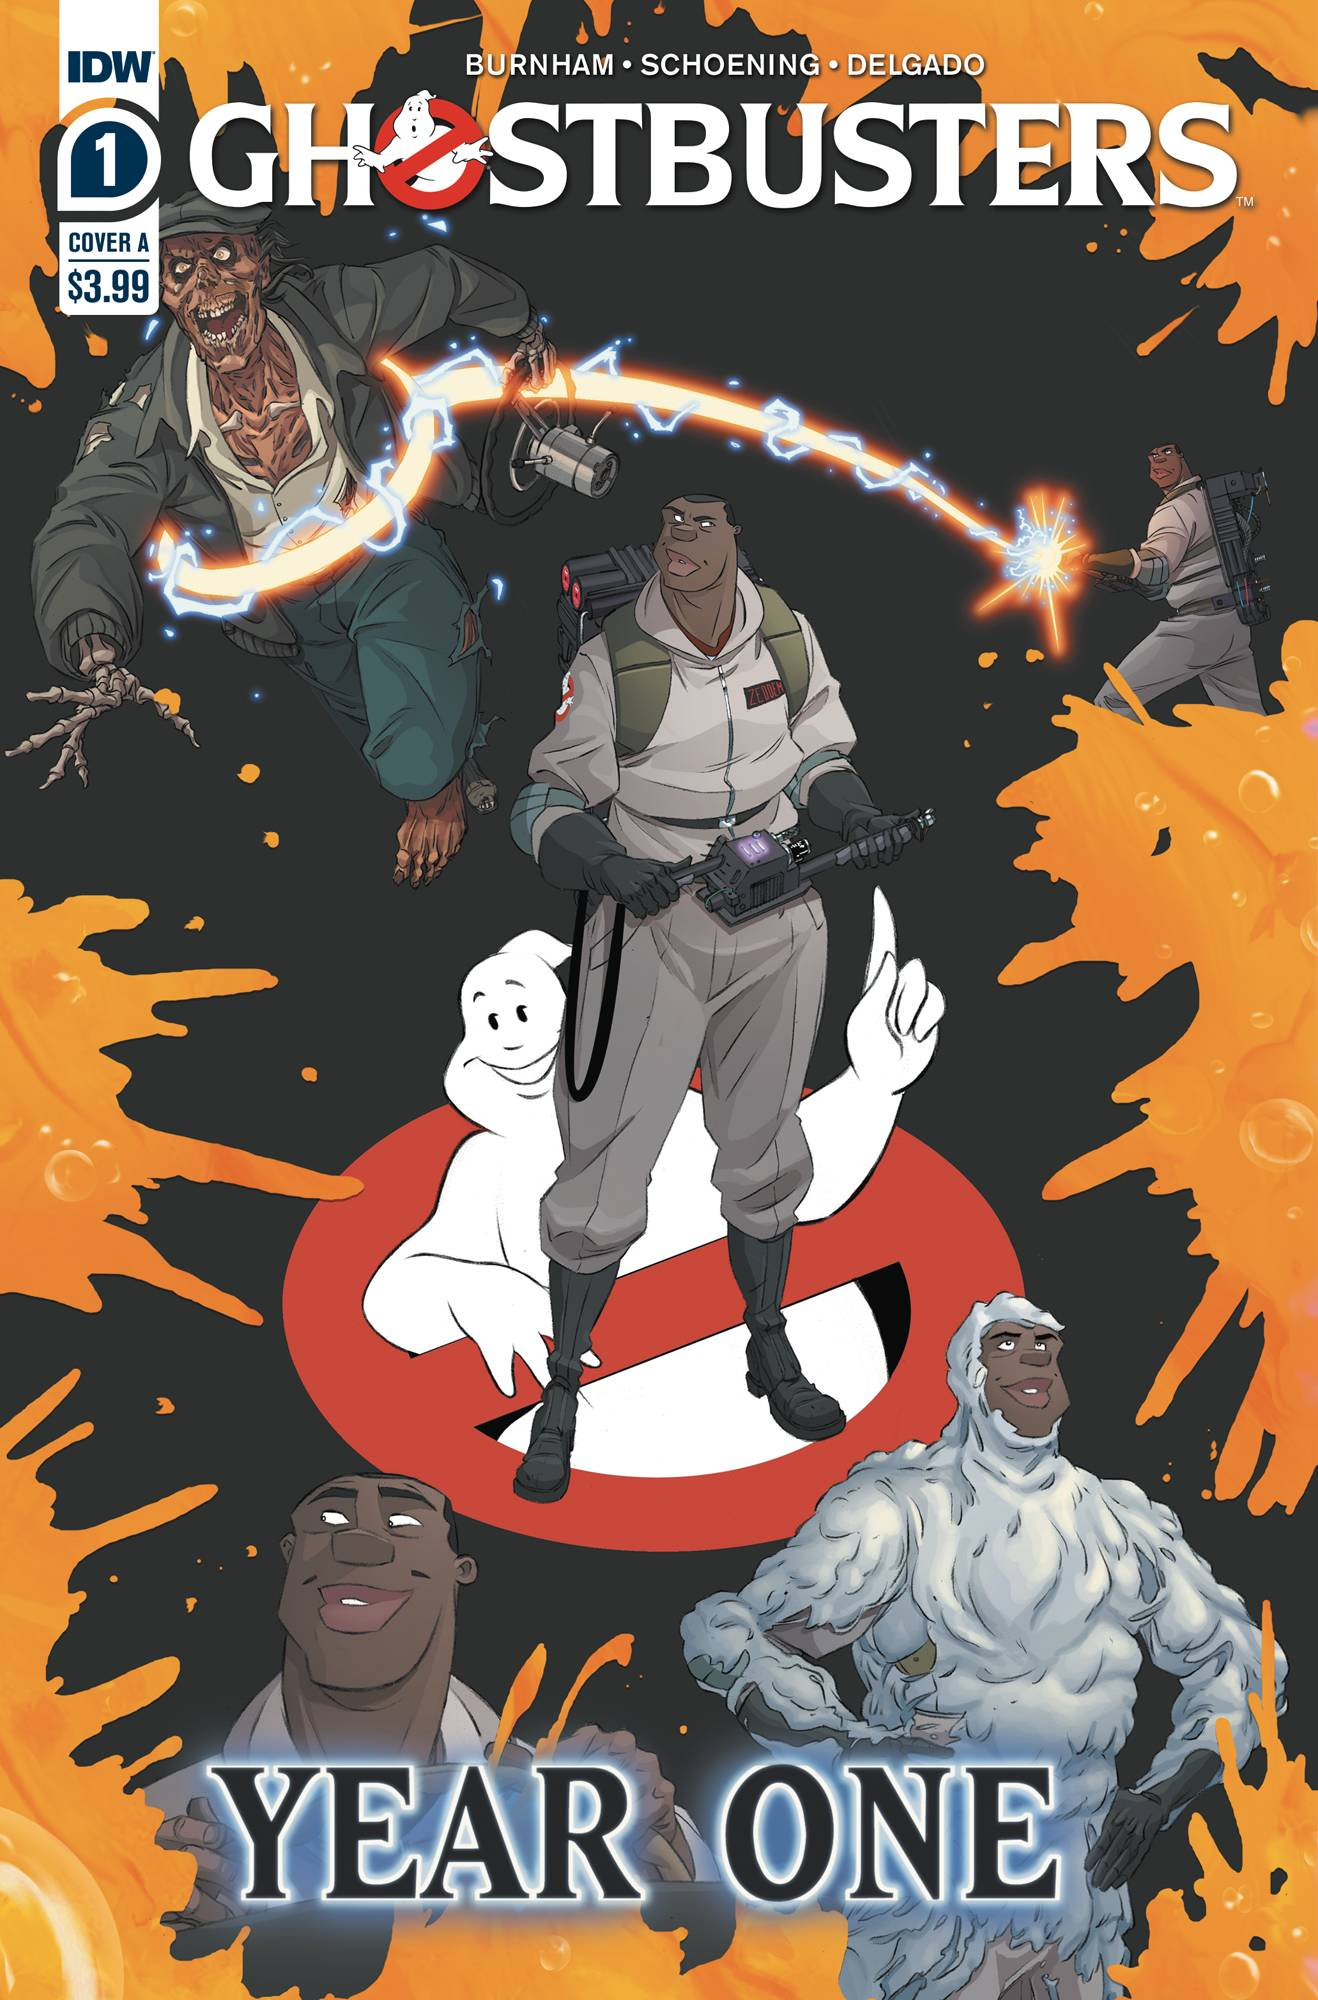 Ghostbusters: Year One #1 (2020)